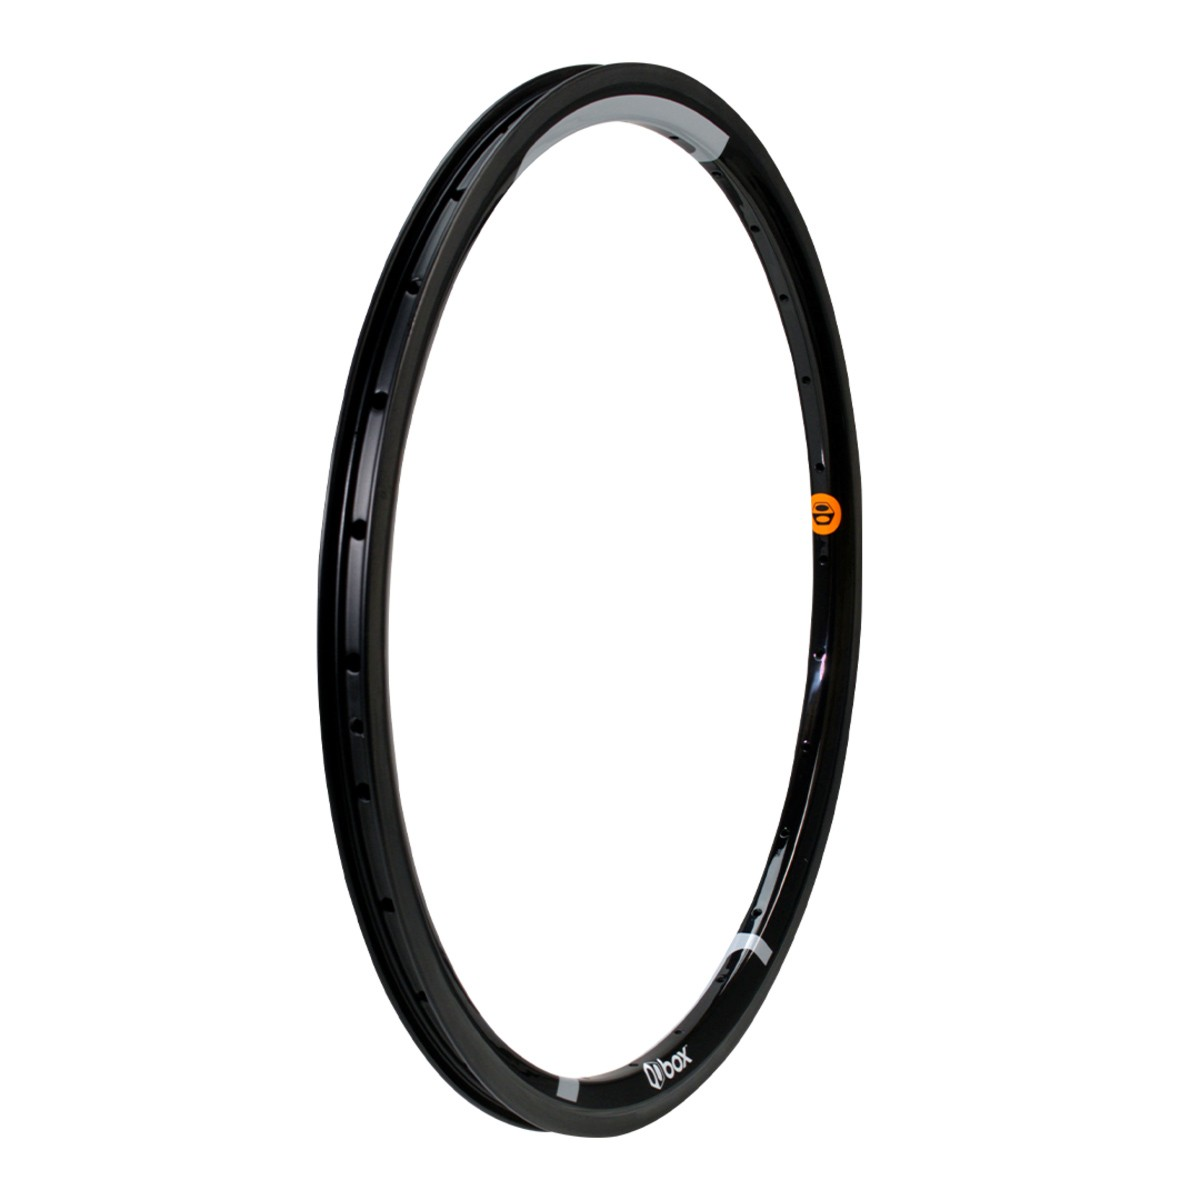 box-one-carbon-406mm-36h-rim-with-brake-surface